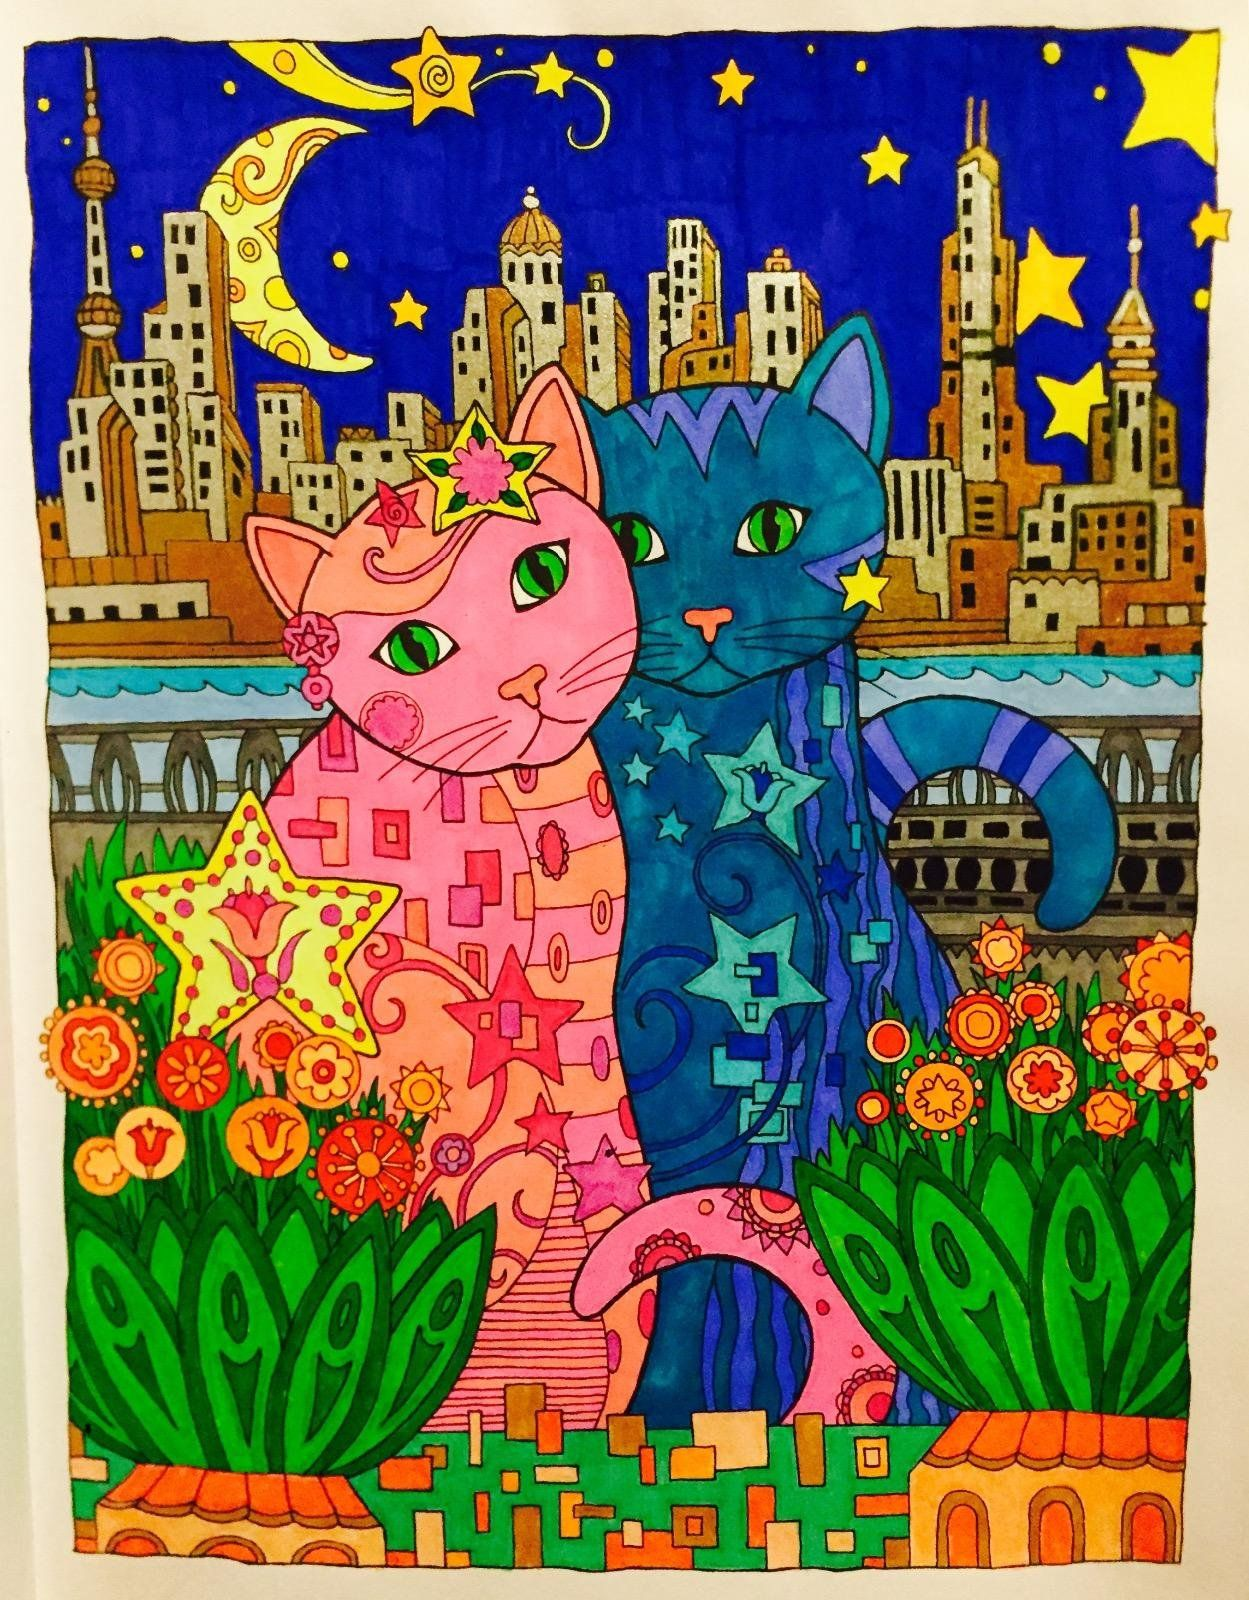 Five Stars By Kitty On Jan 25 2016 Amazon Creative Haven Colouring TechniquesColoring BooksAdult ColoringCat